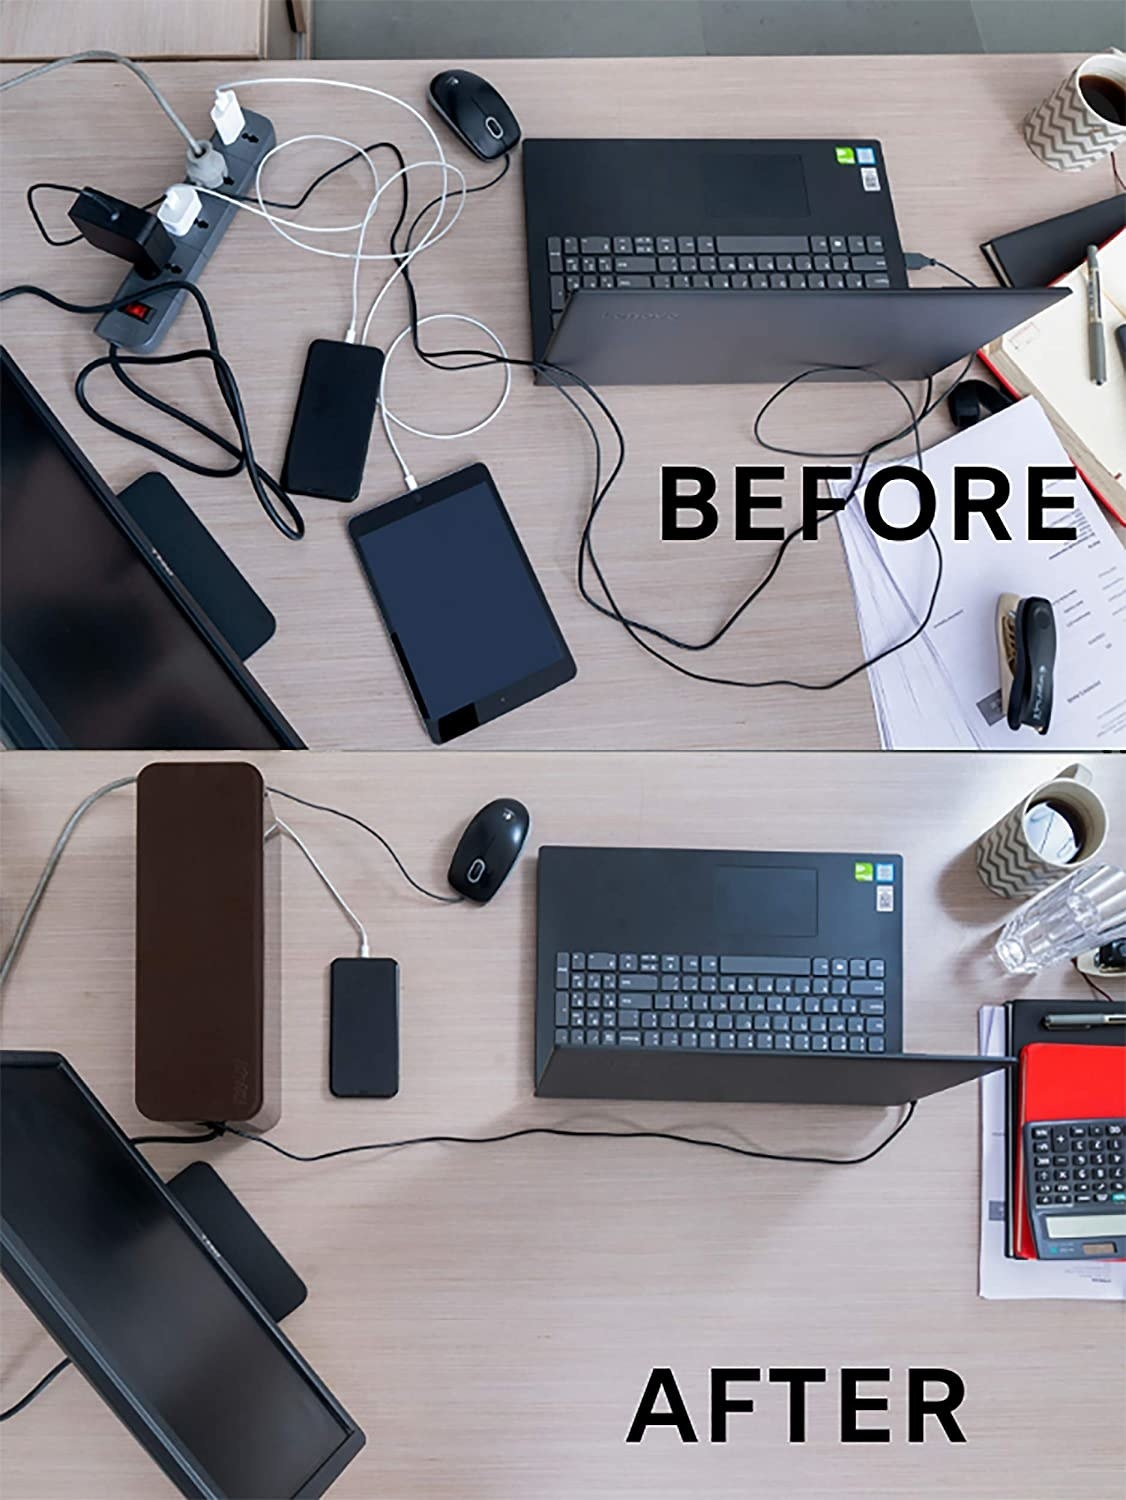 A before-and-after image of a work desk. The before image shows us a messy desk with cables all over the place. The after image shows us a tidy desk with cables neatly arranged using the wire bin.